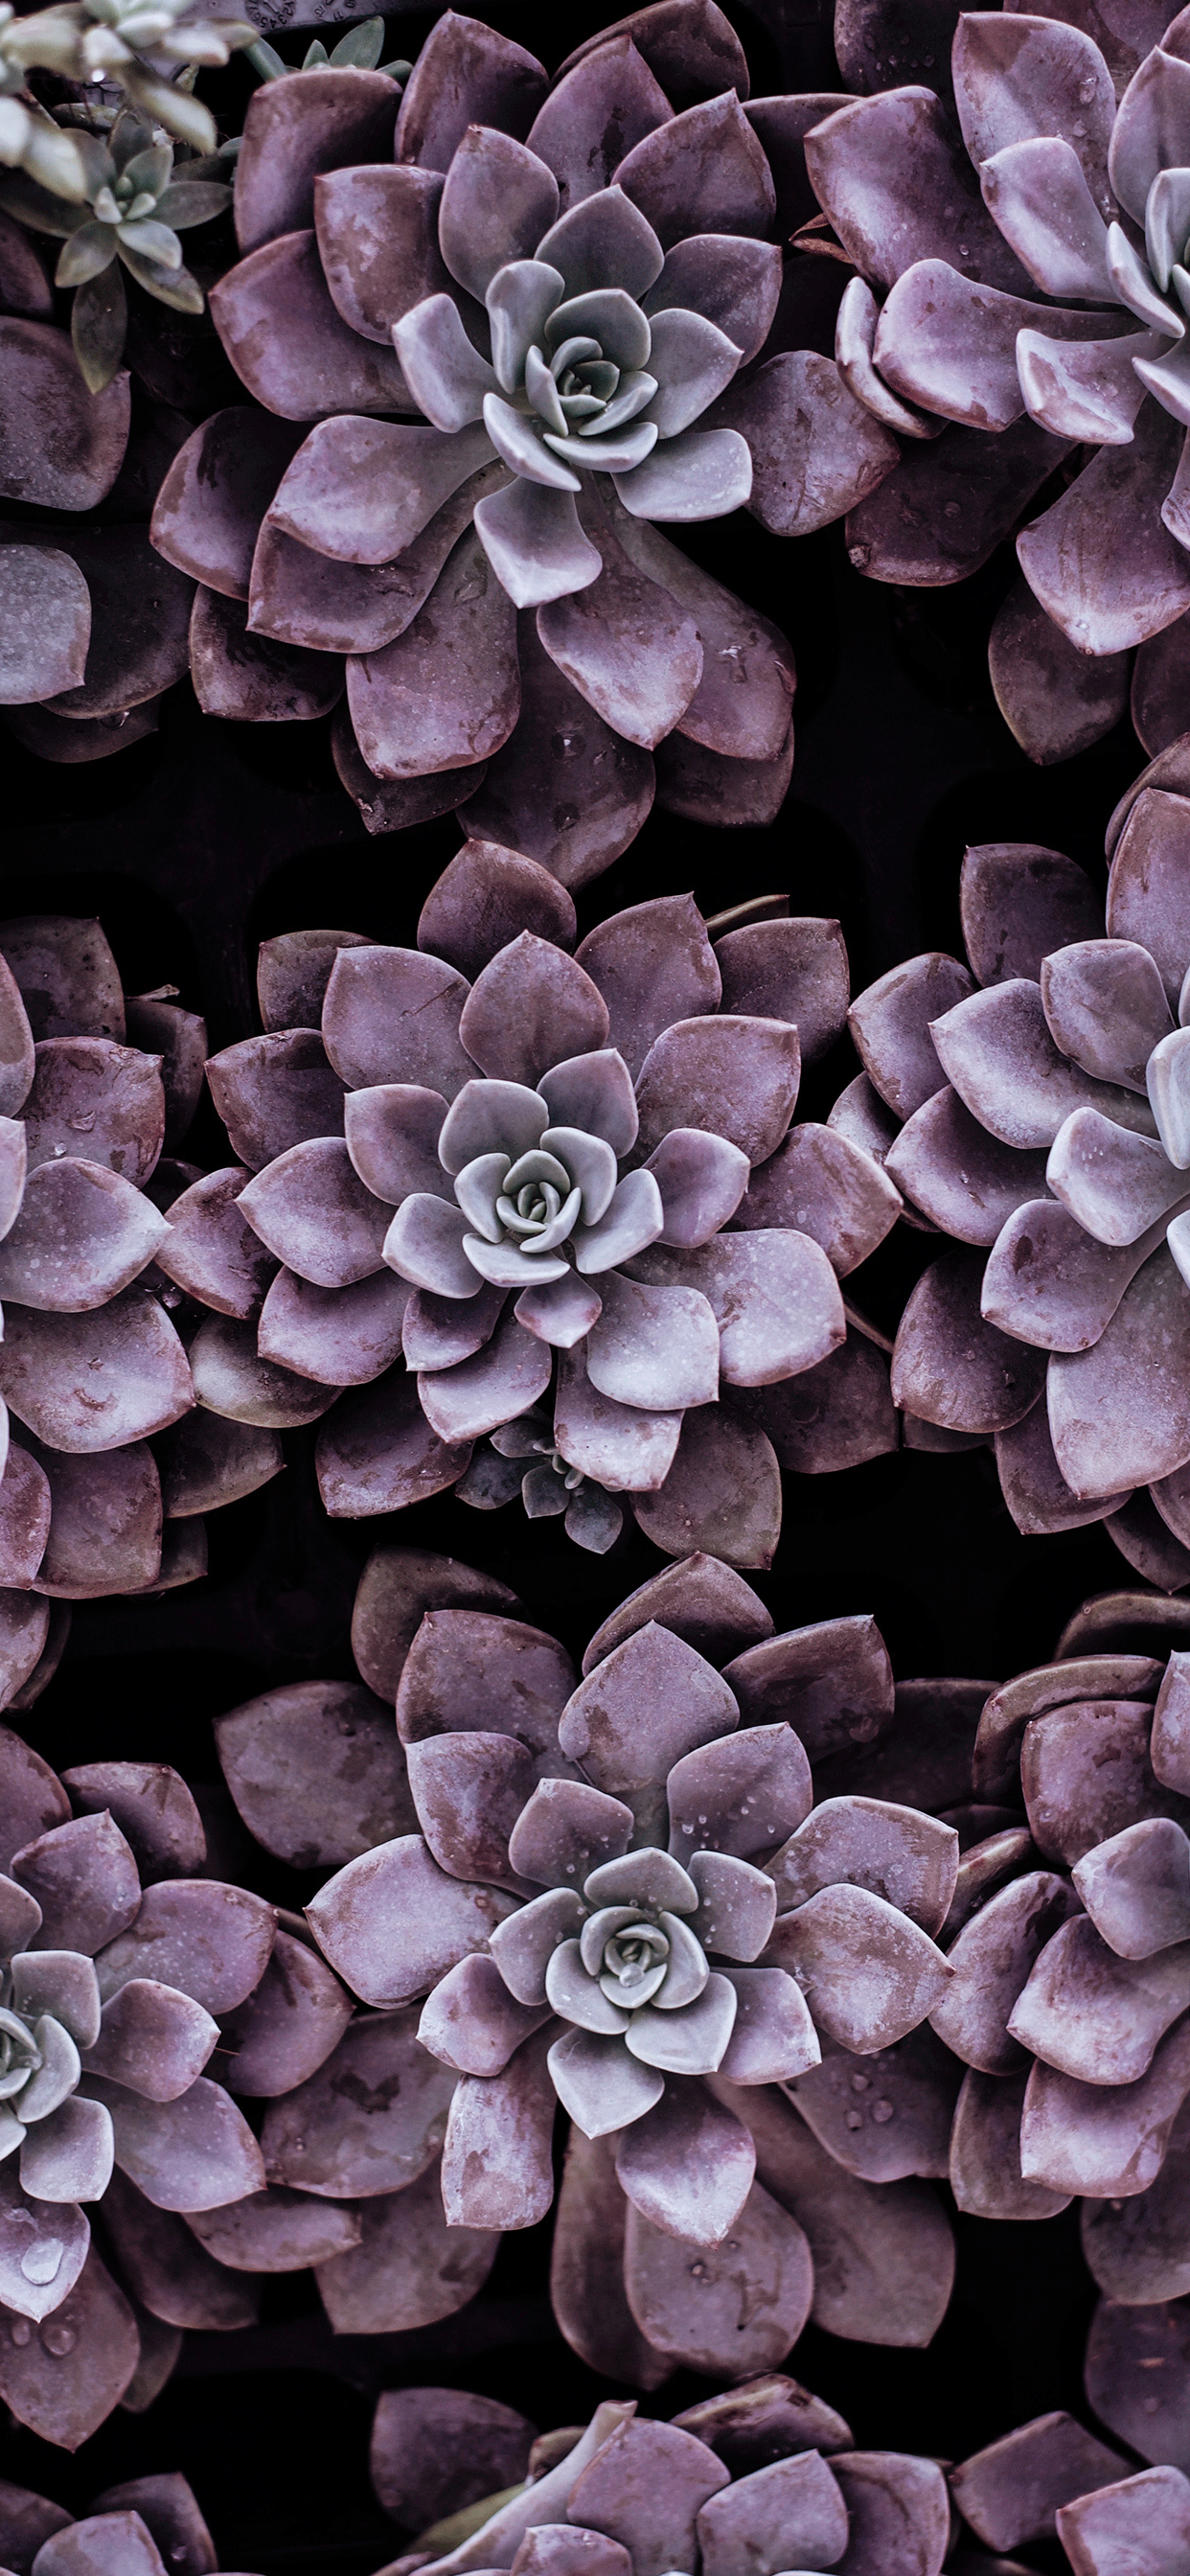 iPhone wallpaper succulent plant pink Fonds d'écran iPhone du 08/04/2019